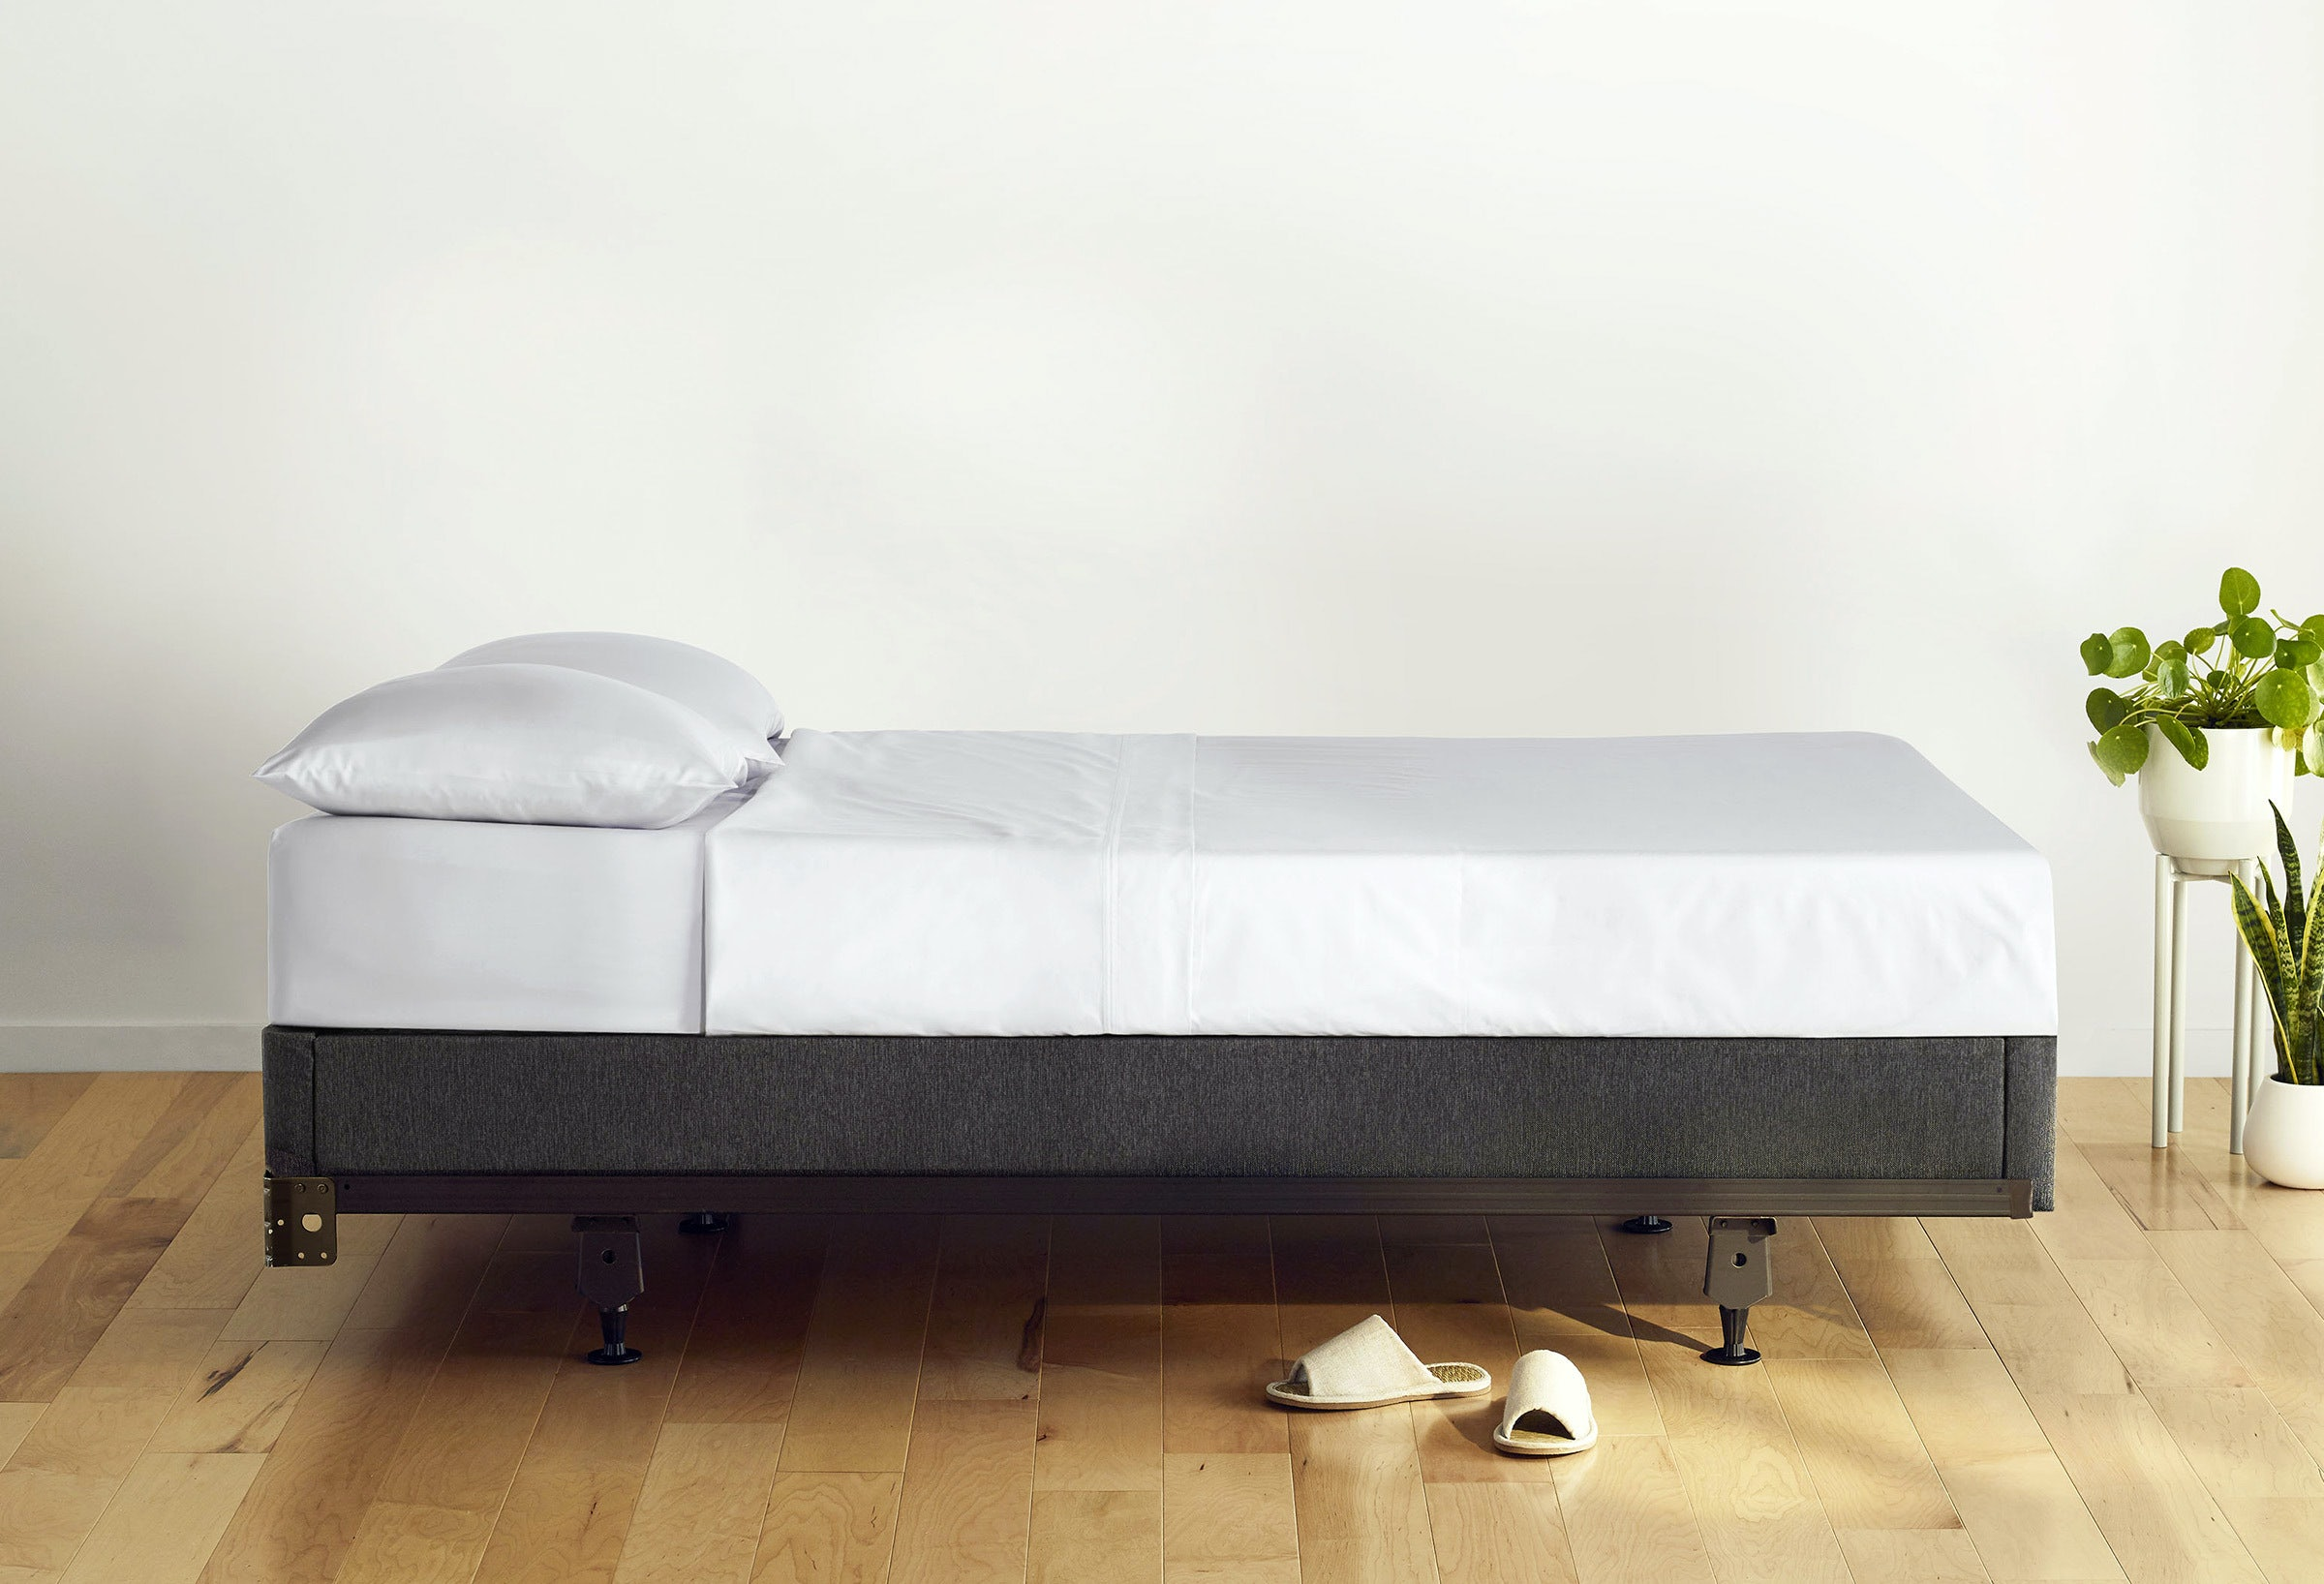 Mattress foundation and metal bed frame